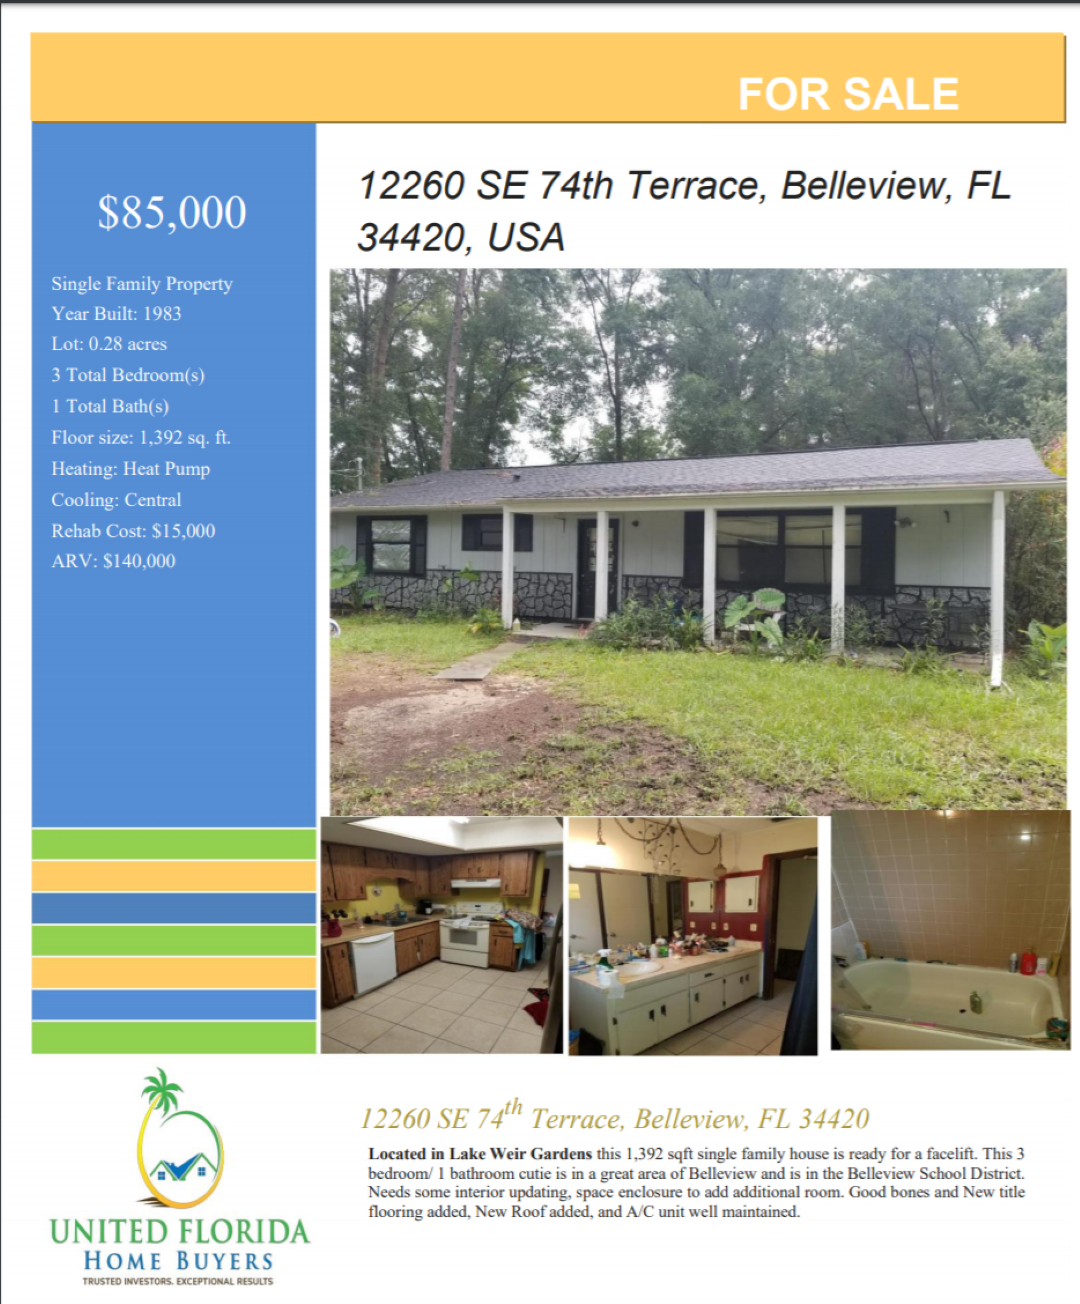 12260 SE 74th Terrace, Belleview, FL